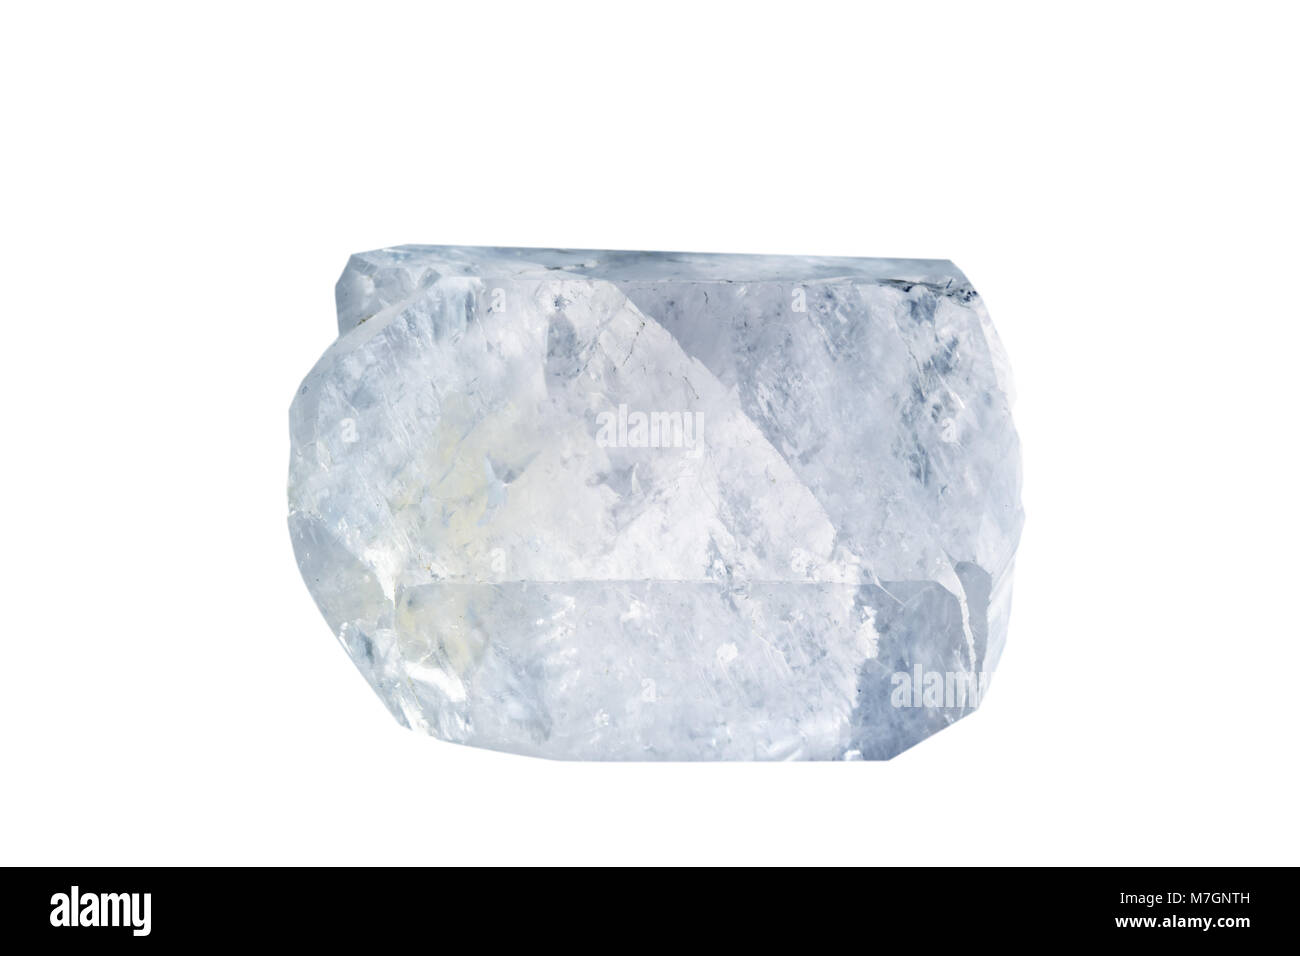 Macro shooting of natural gemstone. The raw mineral is calcite. Isolated object on a white background. - Stock Image